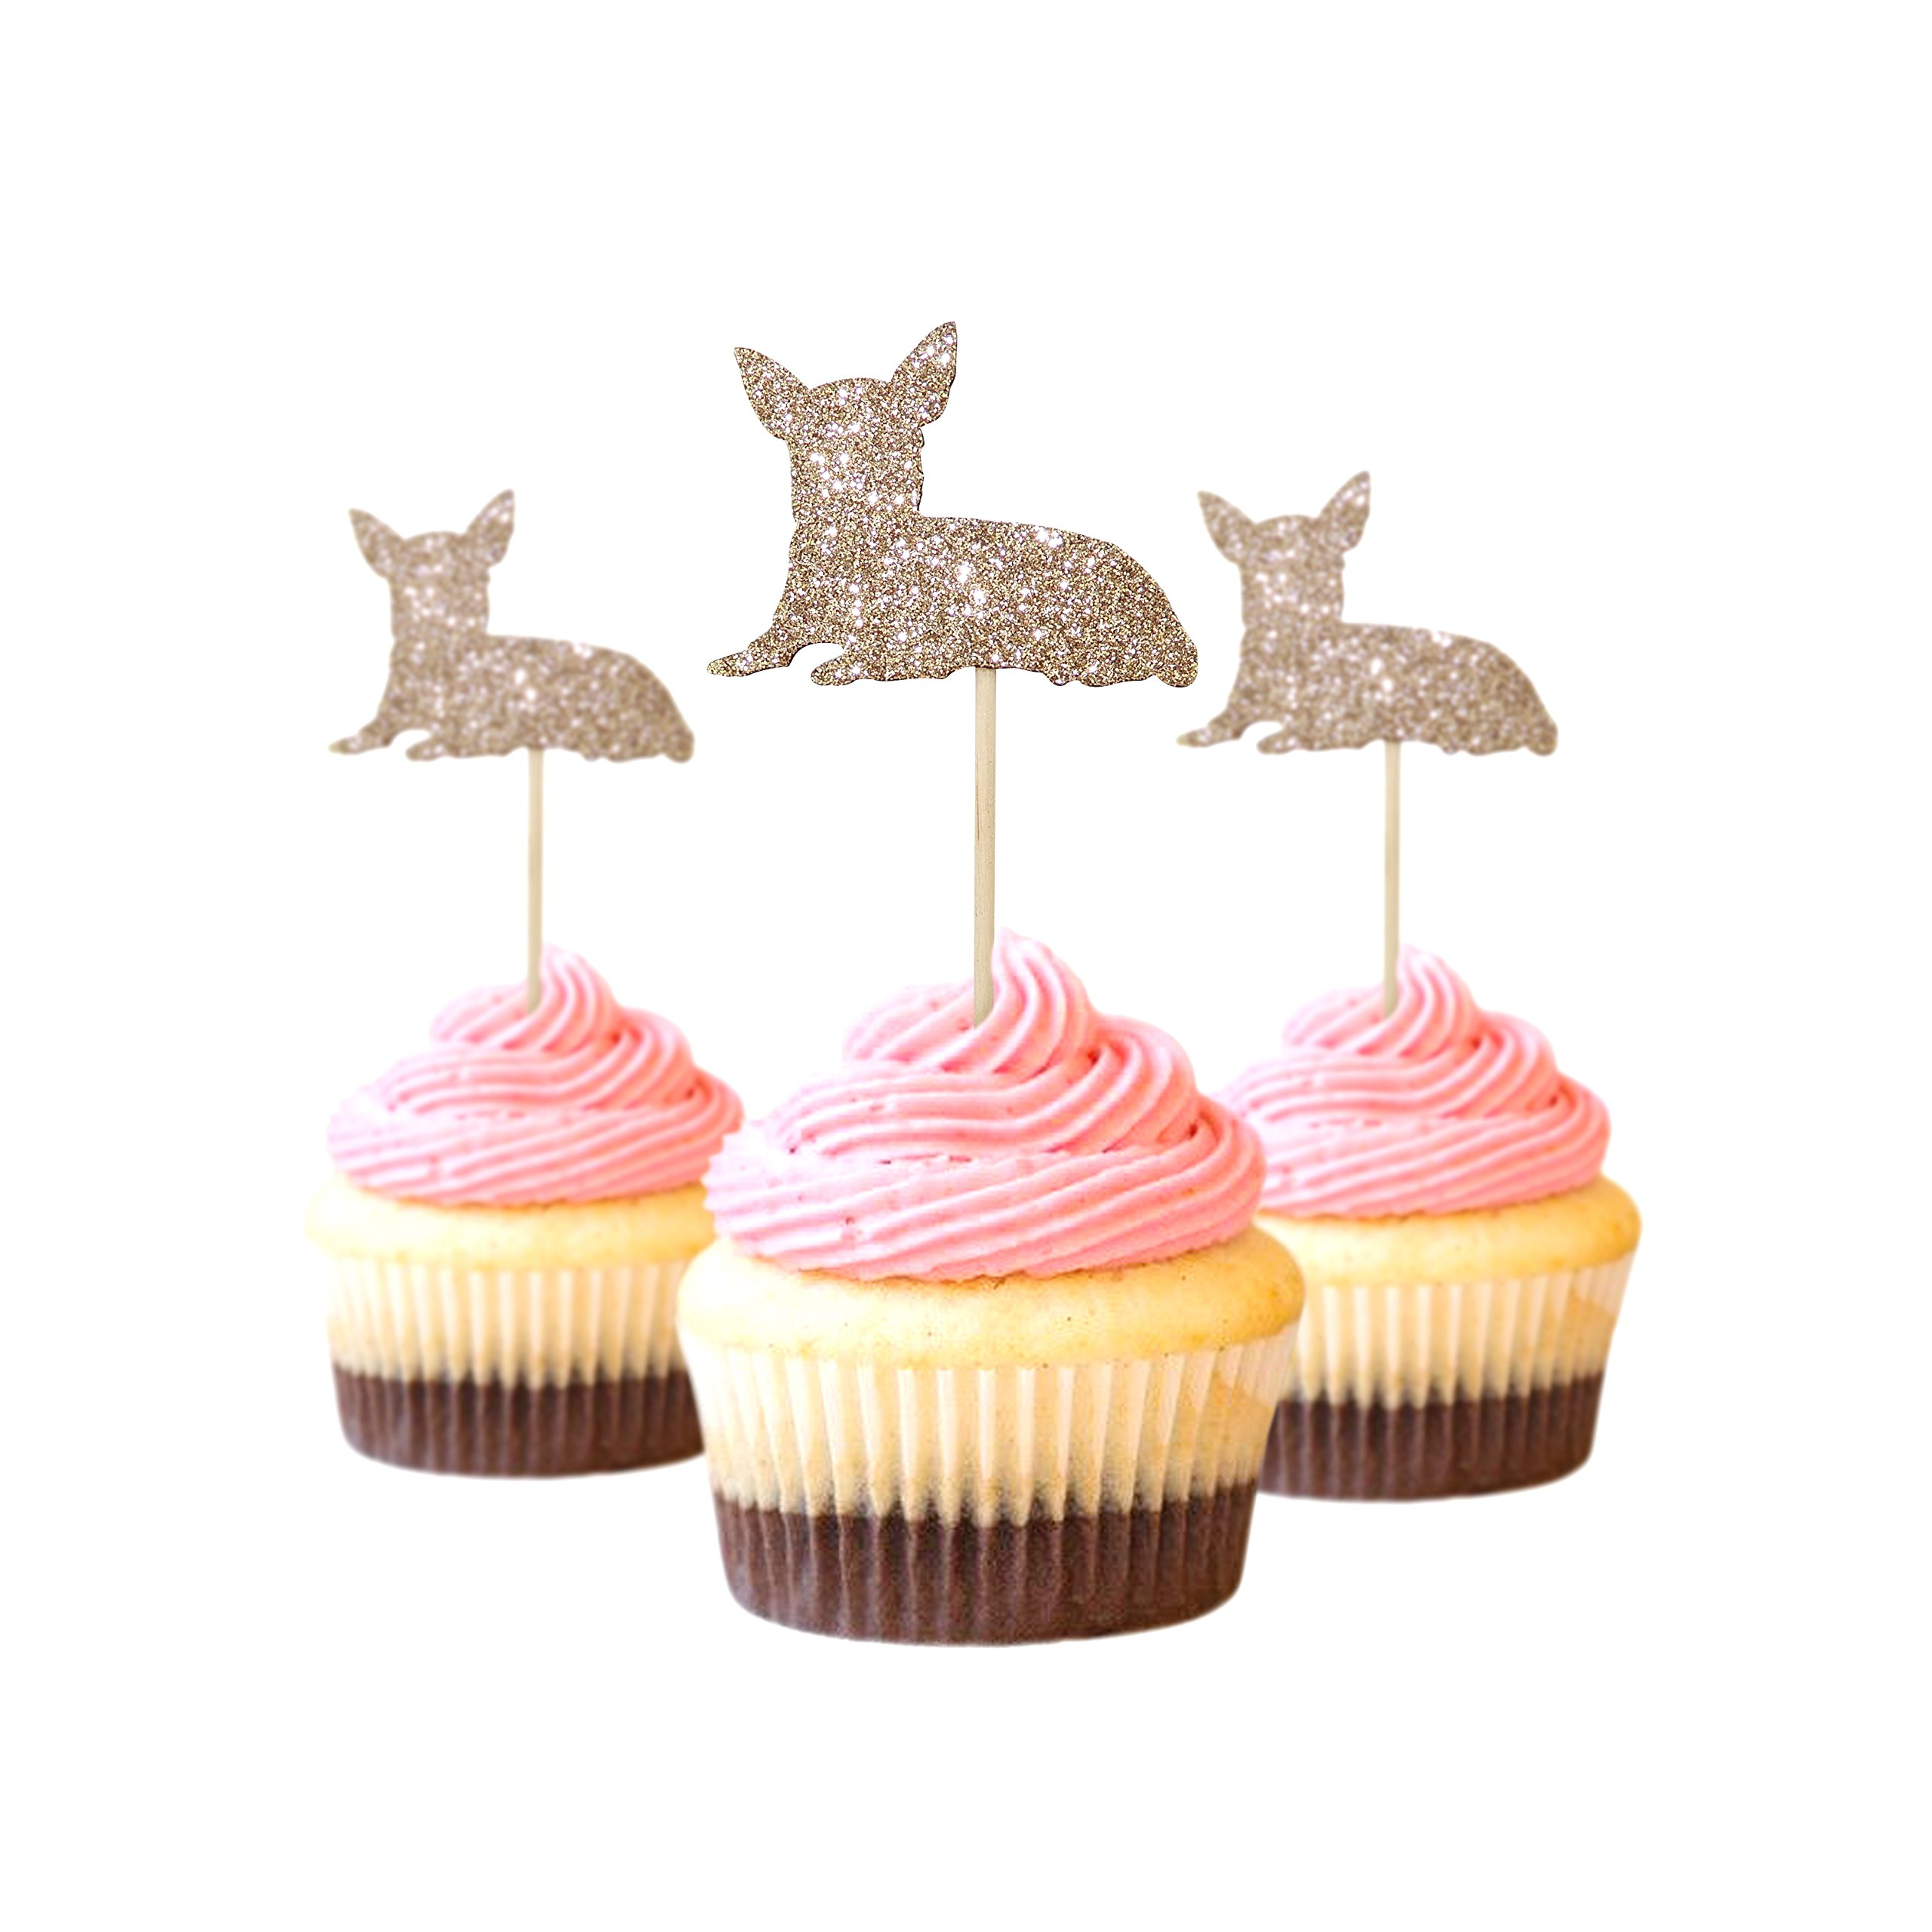 Chihuahua Cupcake Topper Glitter Foamy Beige Color 12 pieces per Pack Decoration pet birthday